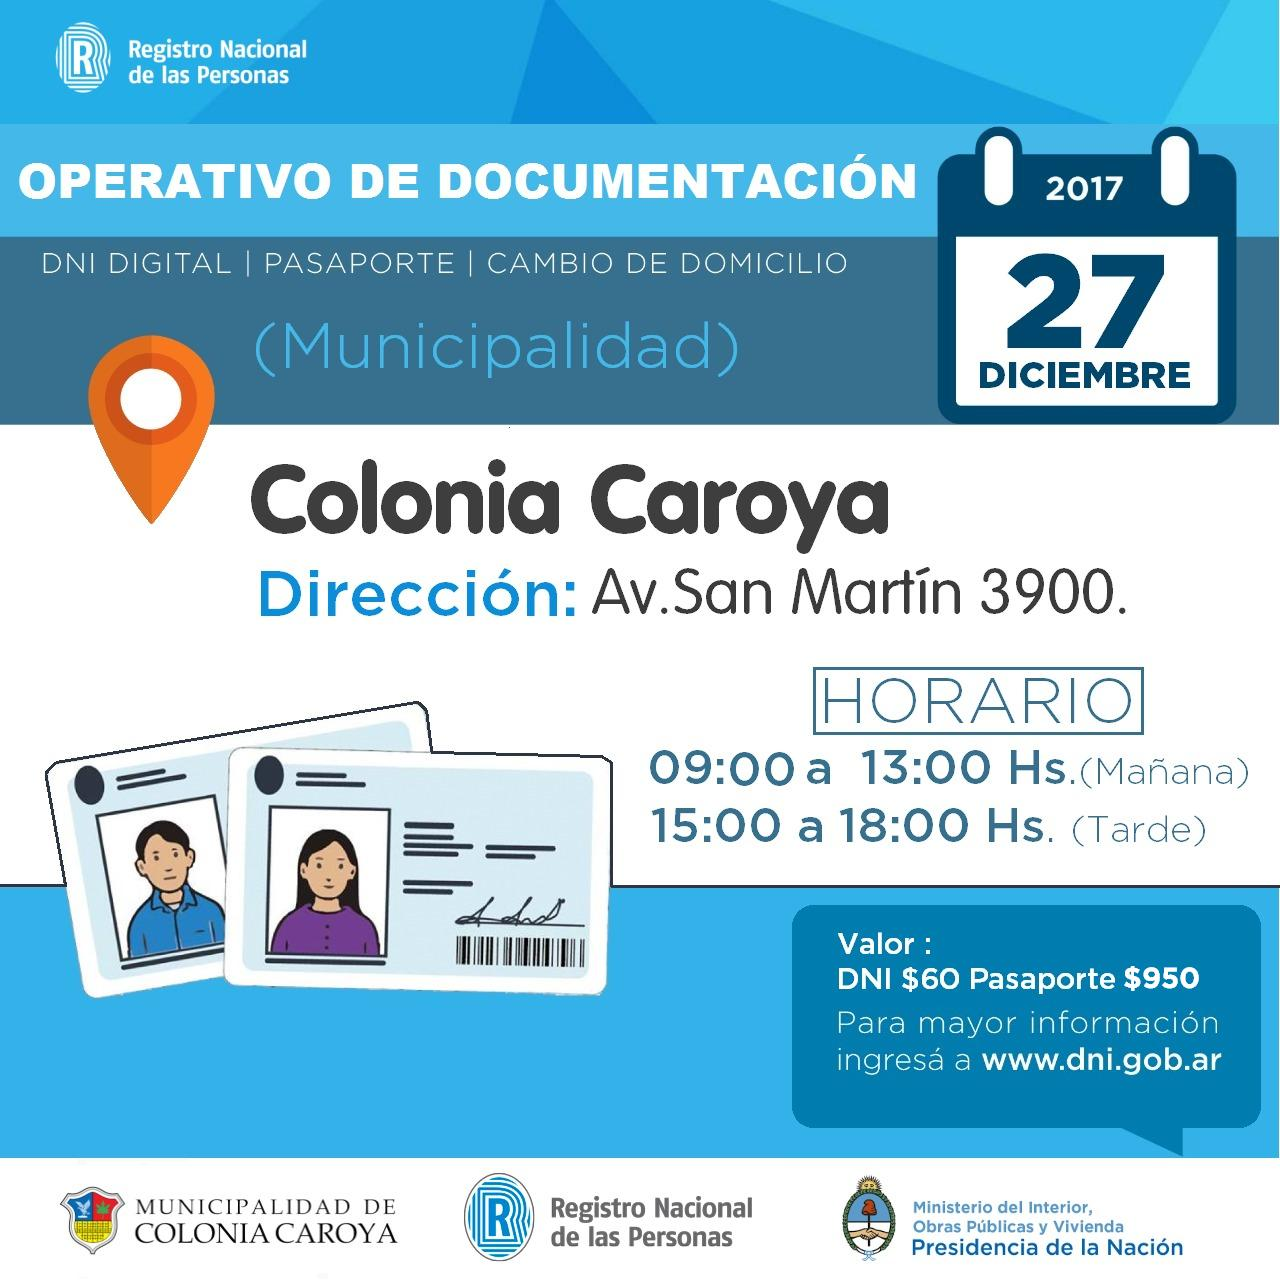 Operativo de documentaci n en colonia caroya for Pasaporte ministerio interior